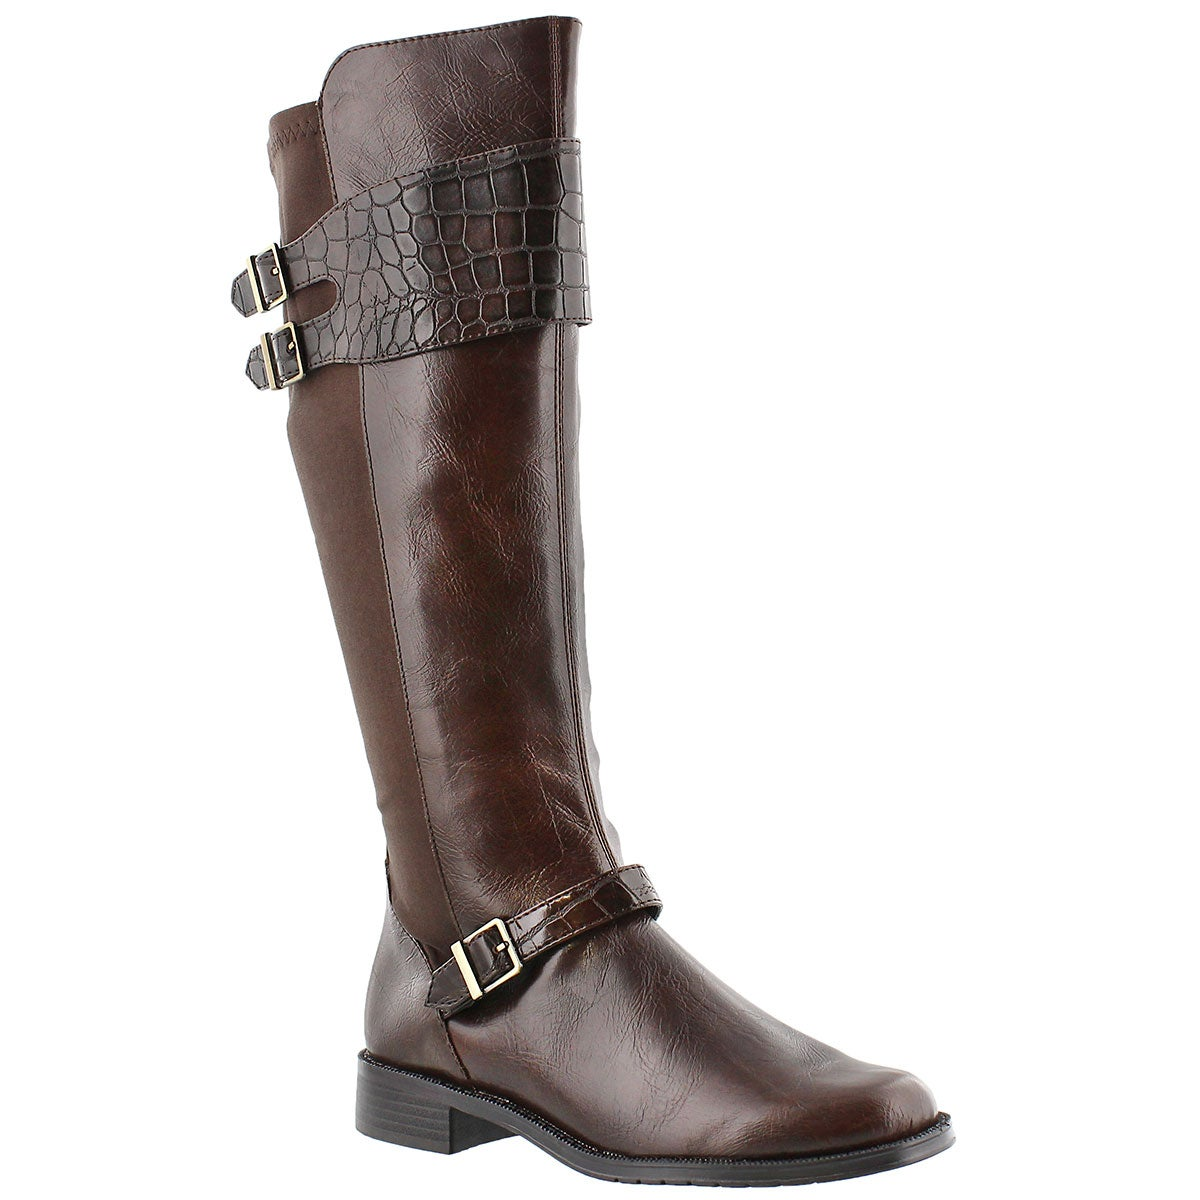 Lds Bridel Suite brn tall riding boot